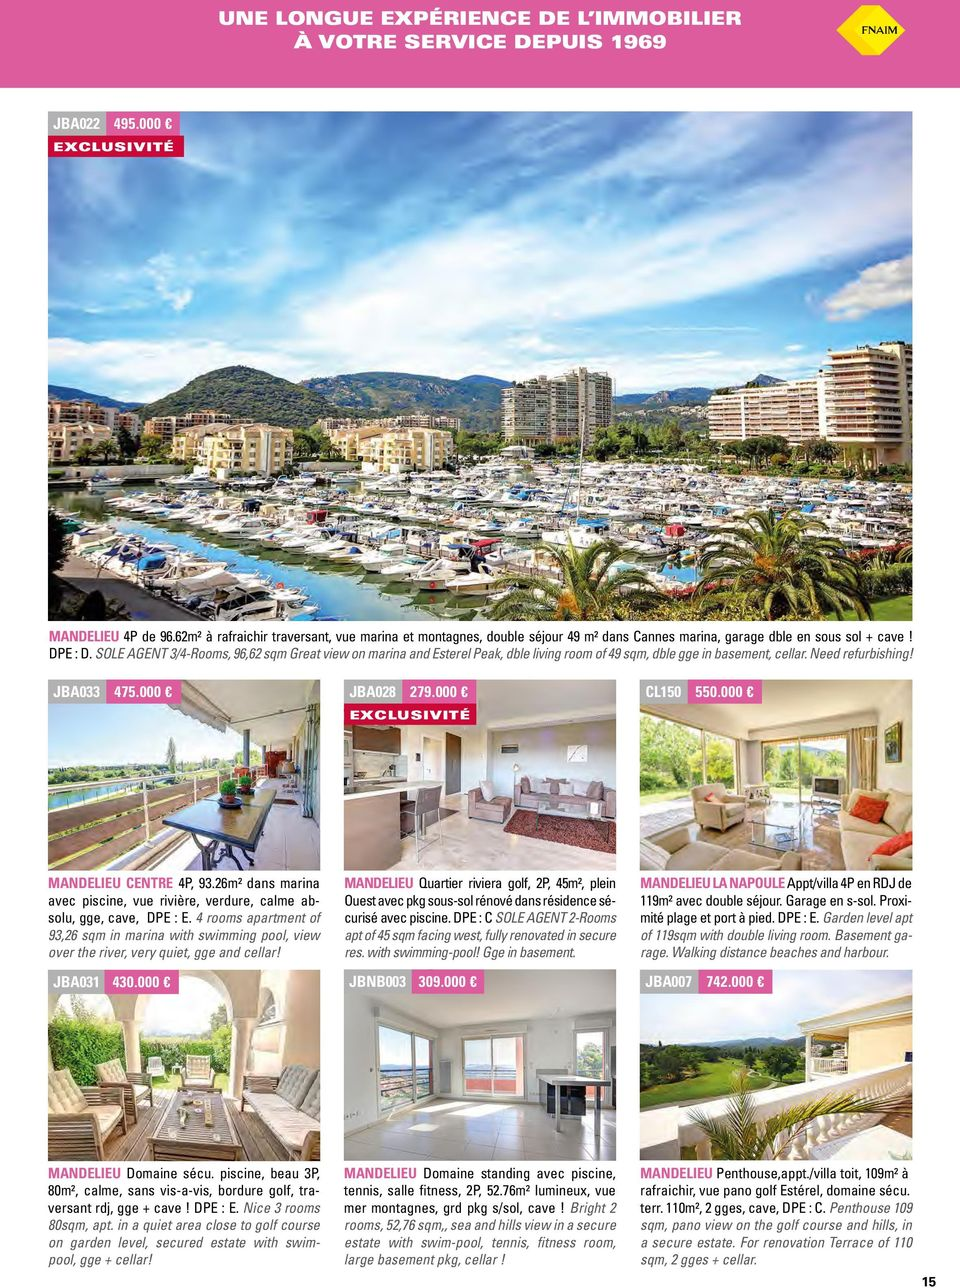 SOLE AGENT 3/4-Rooms, 96,62 sqm Great view on marina and Esterel Peak, dble living room of 49 sqm, dble gge in basement, cellar. Need refurbishing! JBA033 475.000 JBA028 279.000 CL150 550.